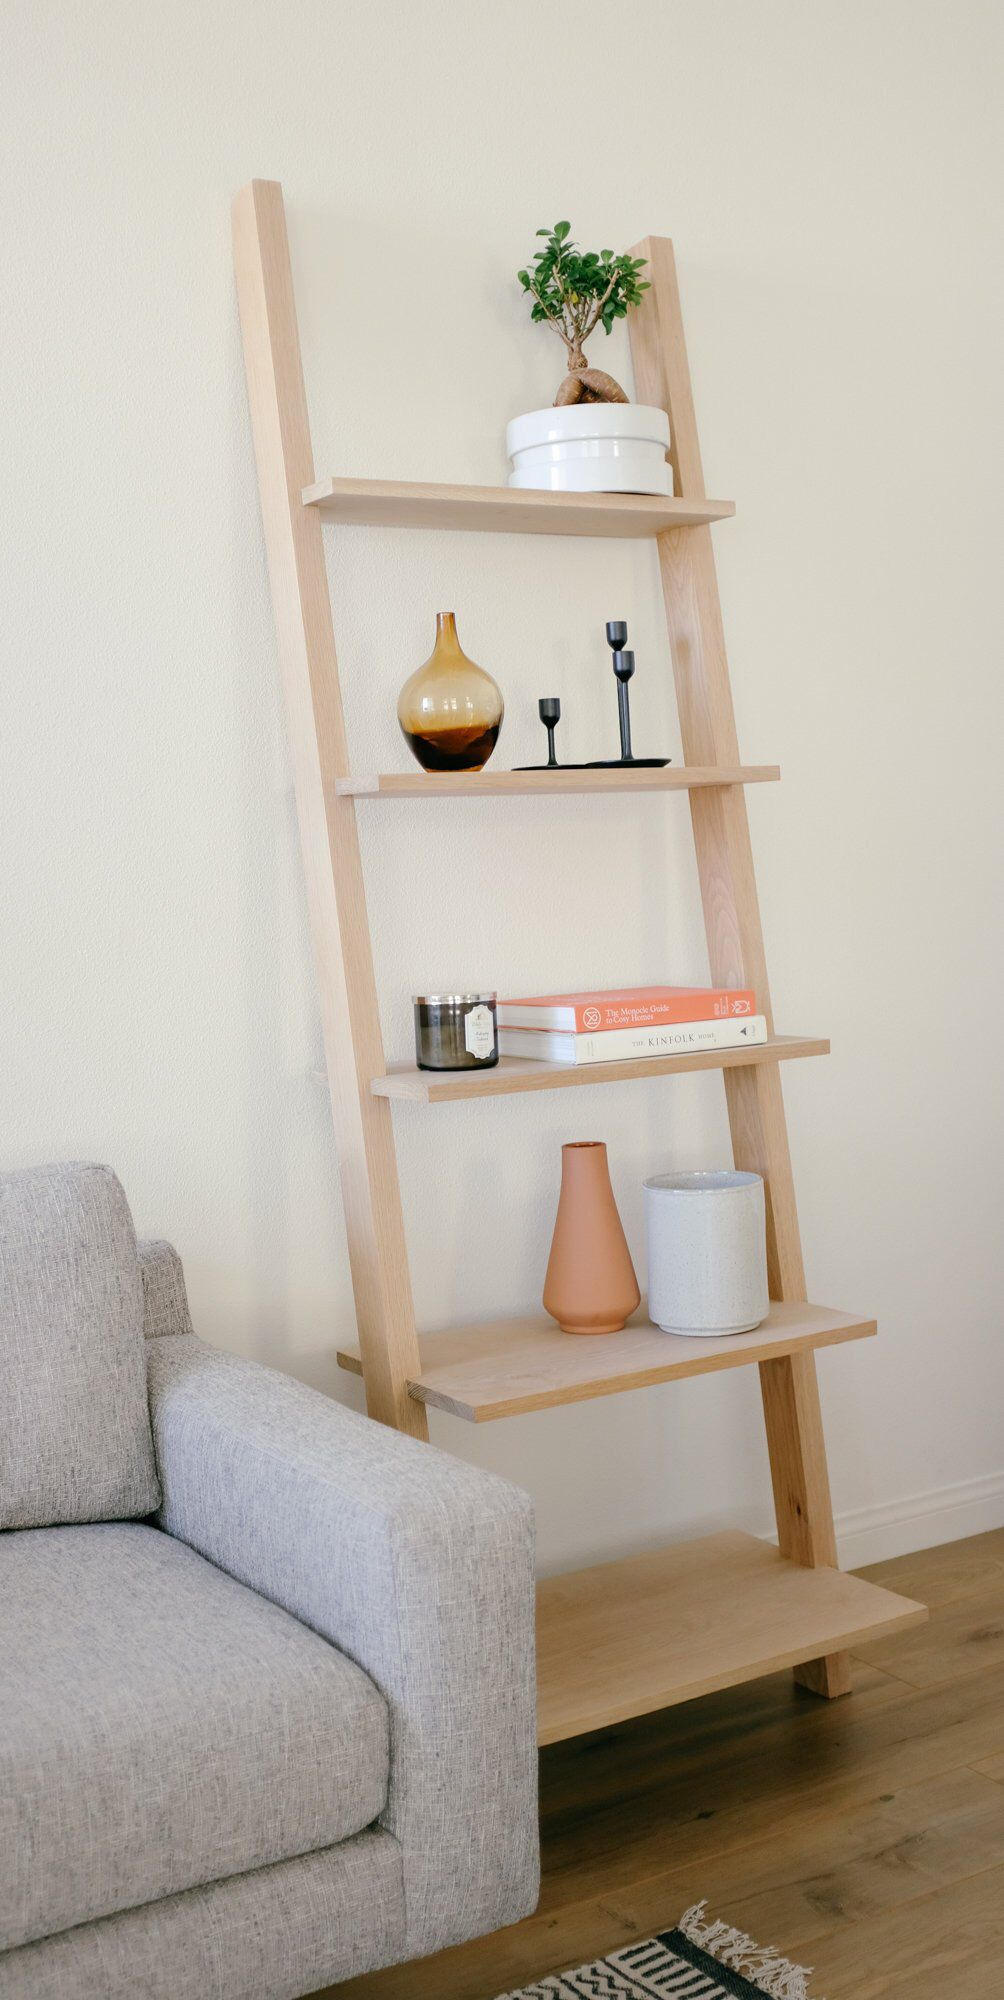 Modern Bookcase Leaning Bookcase Ladder Shelf Mid Century Bookshelf Ladder Shelves Bathroom Shelves Bathroom Ladder Shelf Leaning Bookcase Modern Bookcase Bookshelves Diy